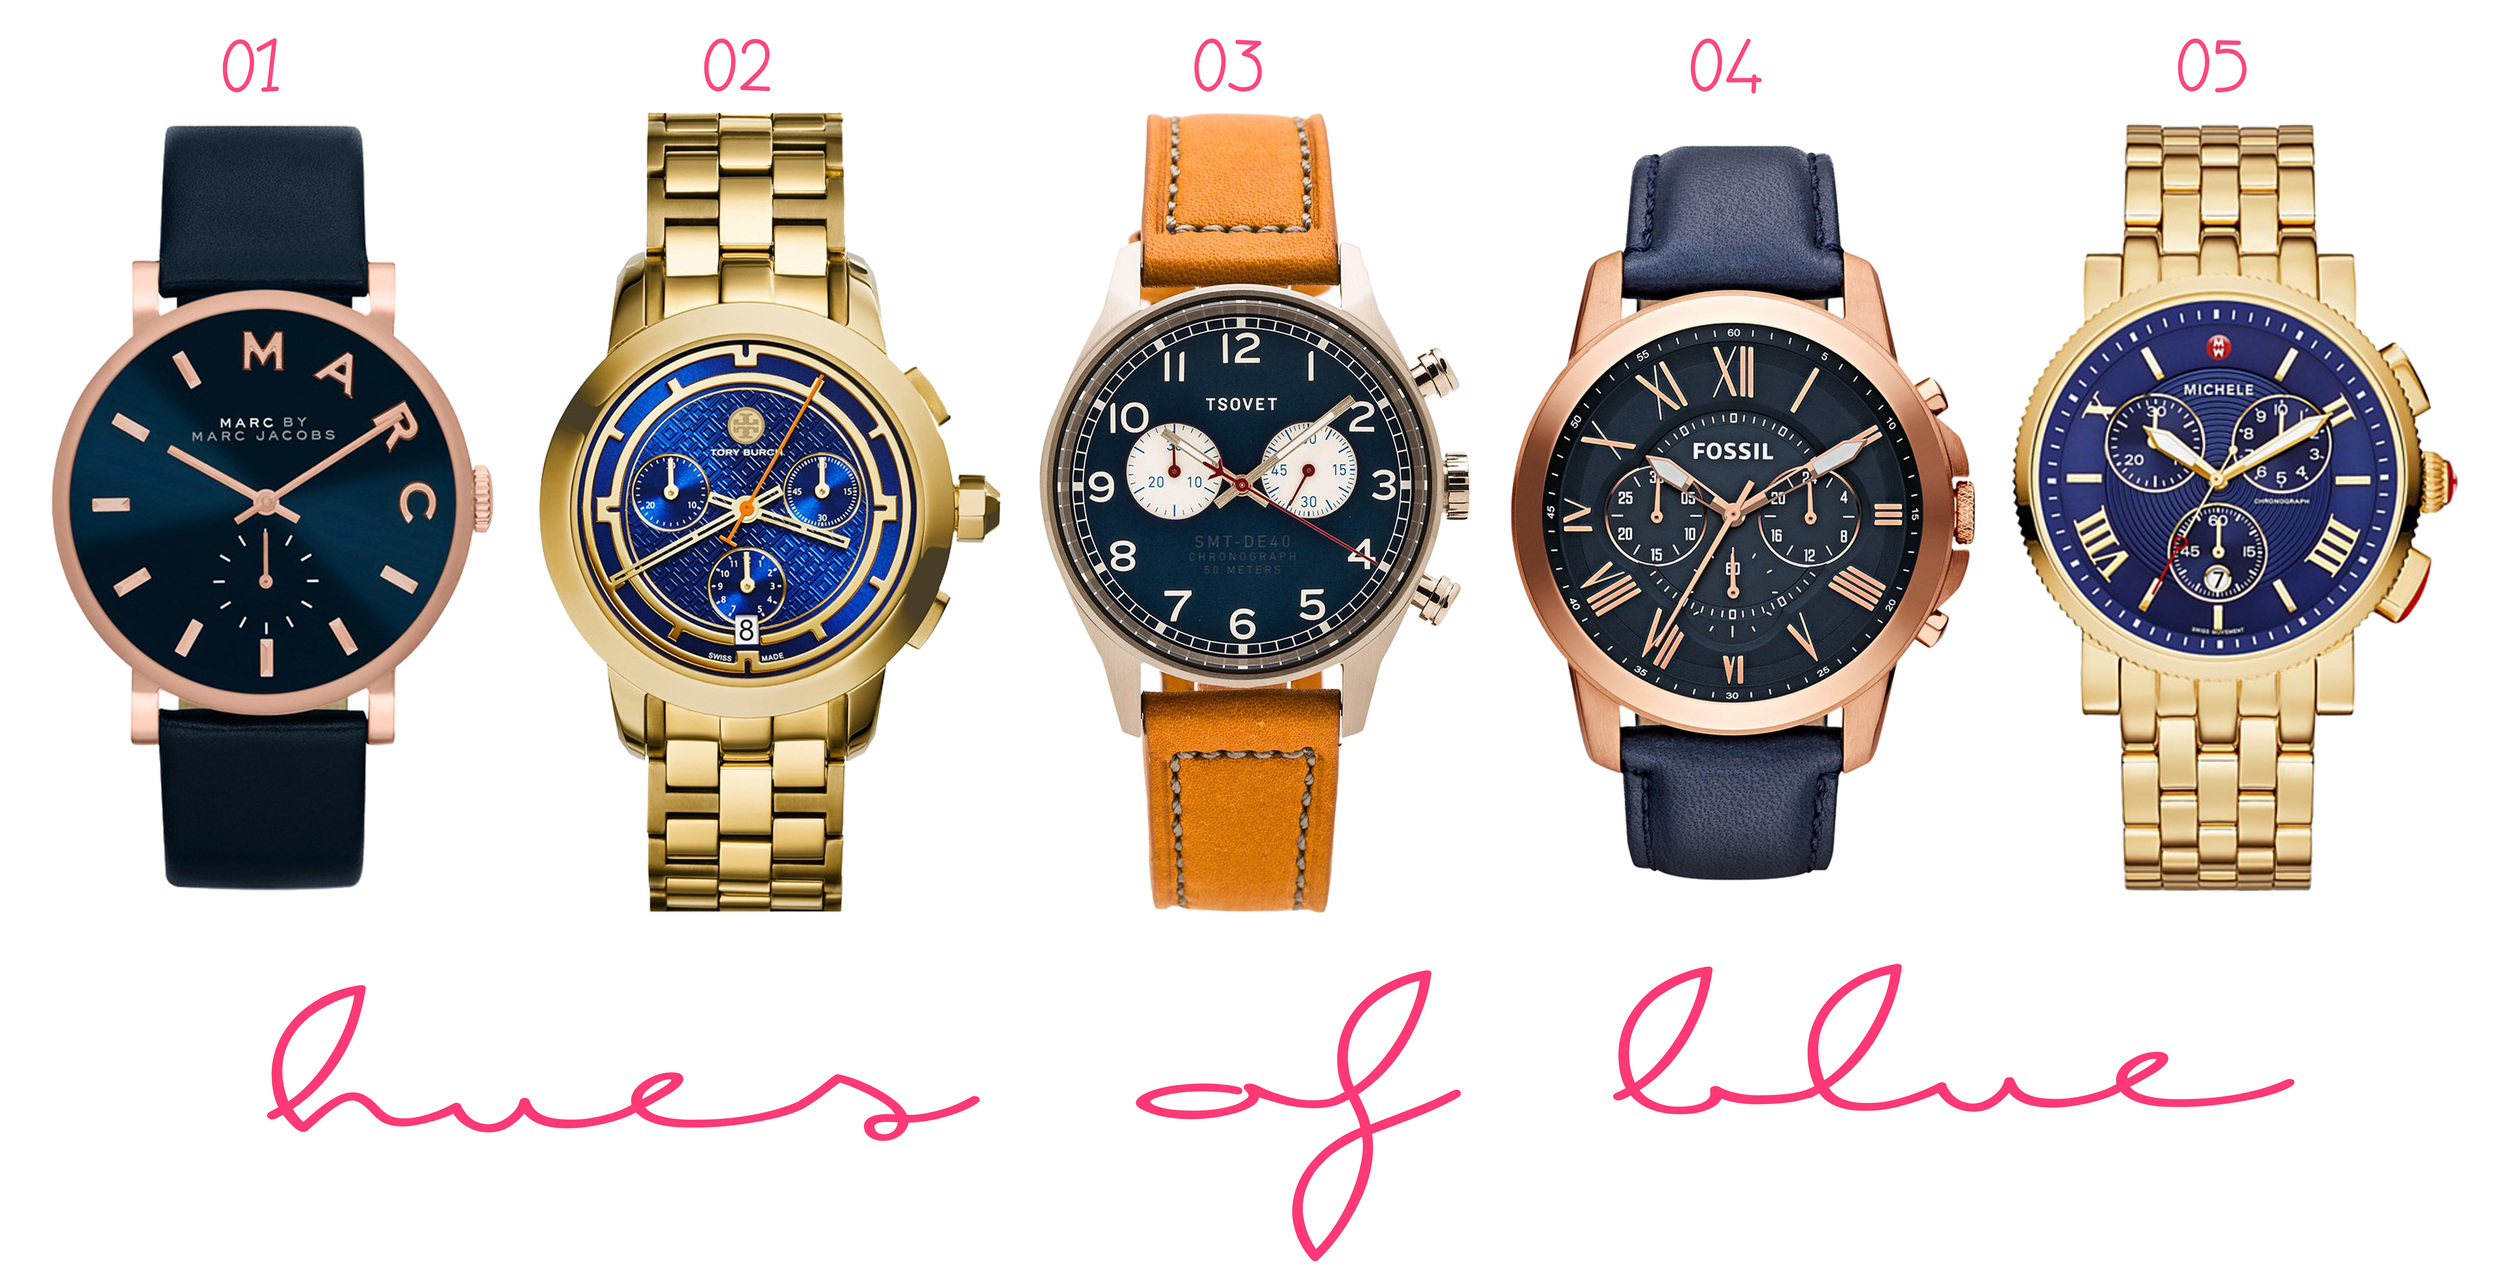 01.  MARC BY MARC JACOBS 'Baker' Leather Strap Watch  ($175) - 02.  Tory Burch 'Tory' Chronograph Bracelet Watch  ($895) - 03.  TSOVET SVT-DE40  ($450) - 04.  Fossil 'Grant' Round Chronograph Leather Strap Watch  ($135) - 05.  MICHELE 'Sport Sail - Large' Chronograph Watch Case  ($845)